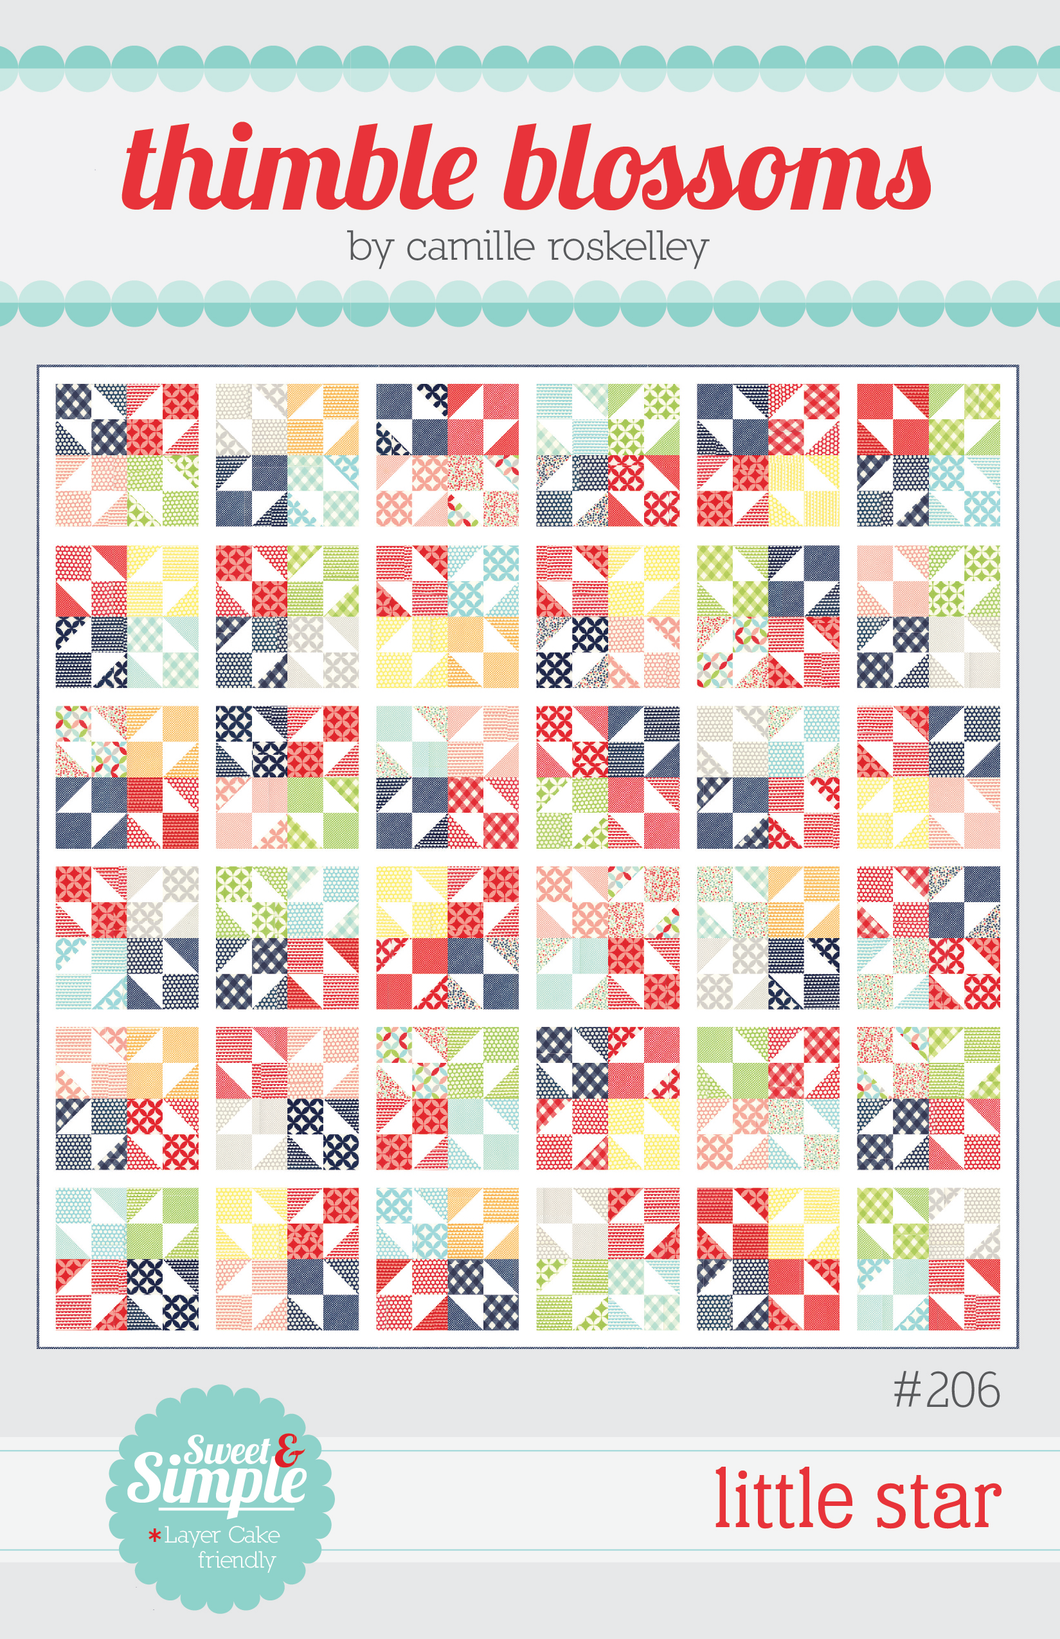 Little Star - PDF pattern